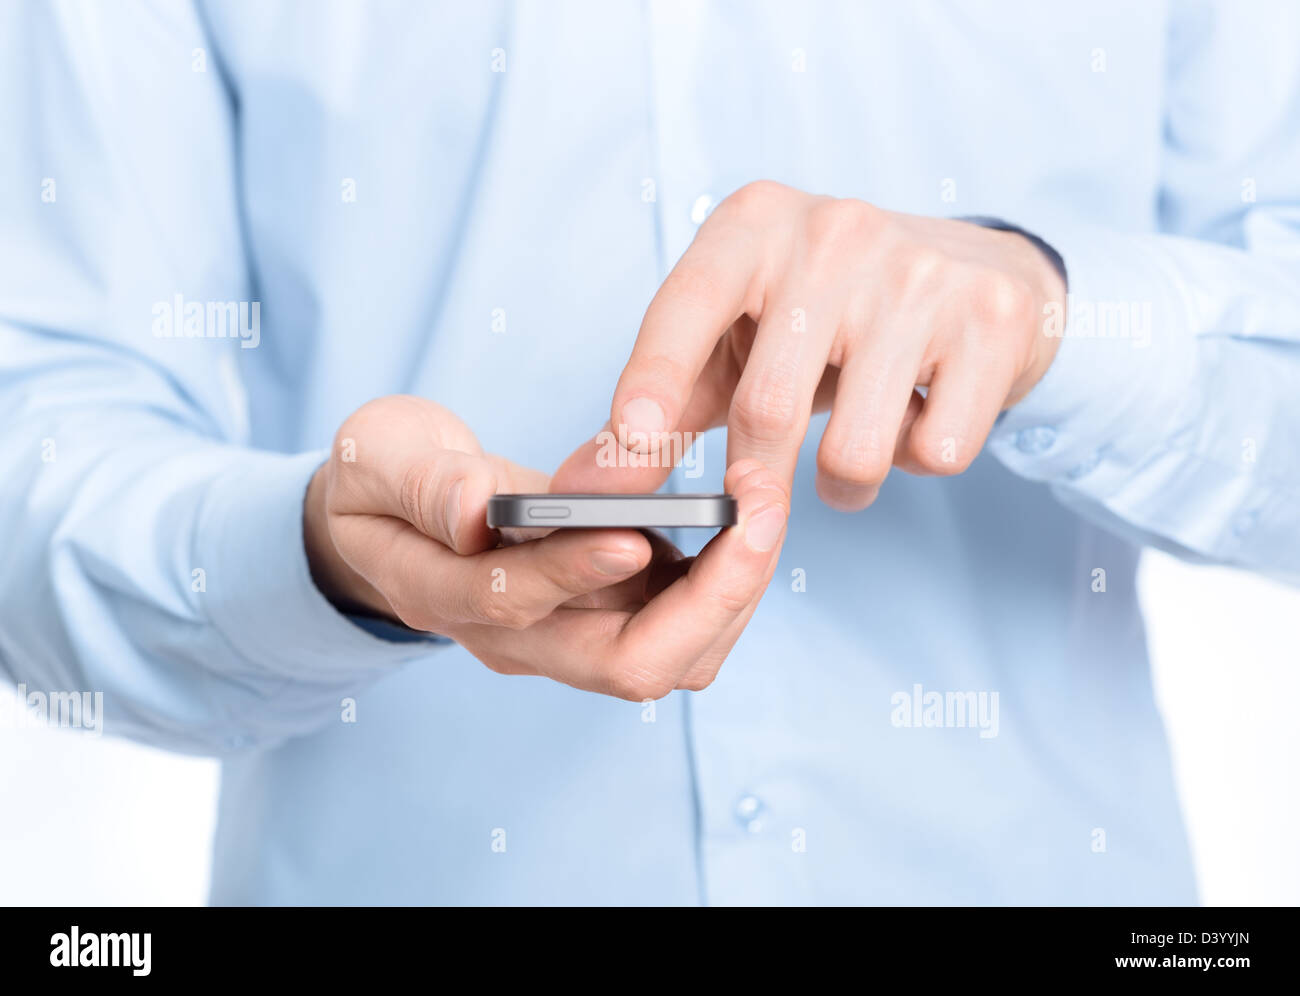 Businessman holding and touching screen on mobile phone. Close-up photo. - Stock Image